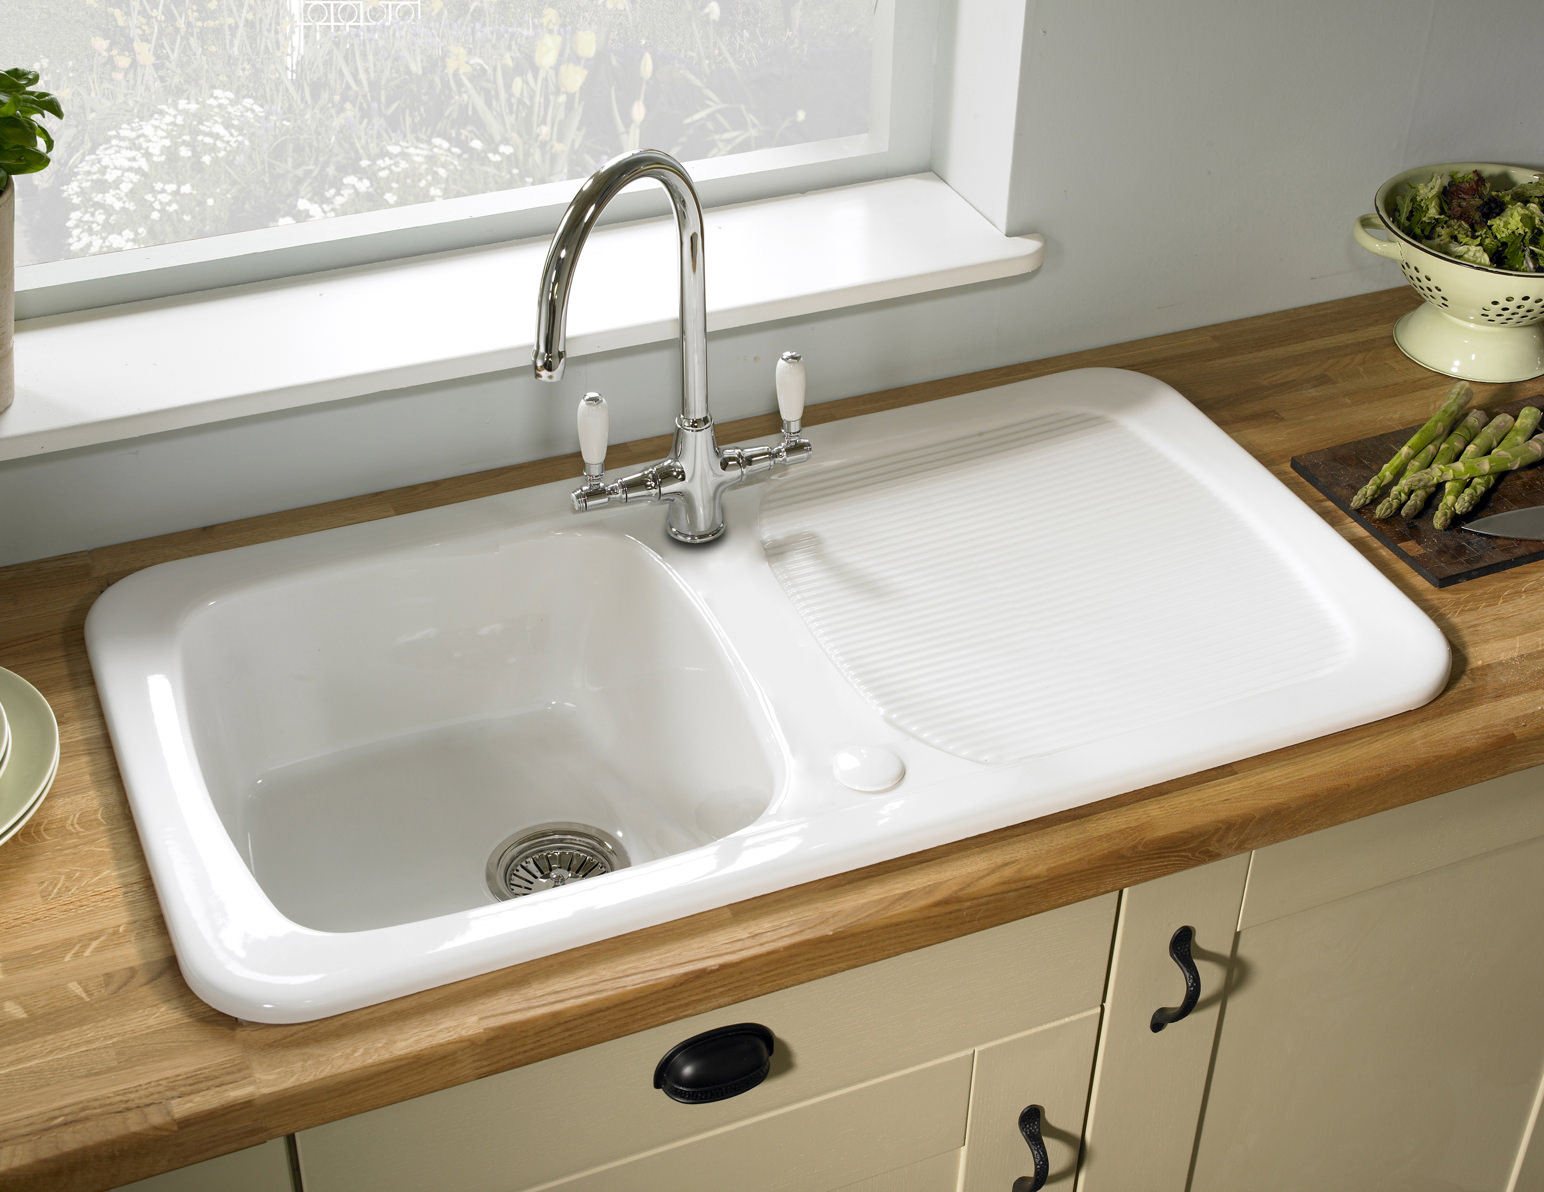 Inset Bathroom Sink Bowl : ... New Astracast Aquitaine Gloss White Ceramic Inset Sink - 1.0 Bowl